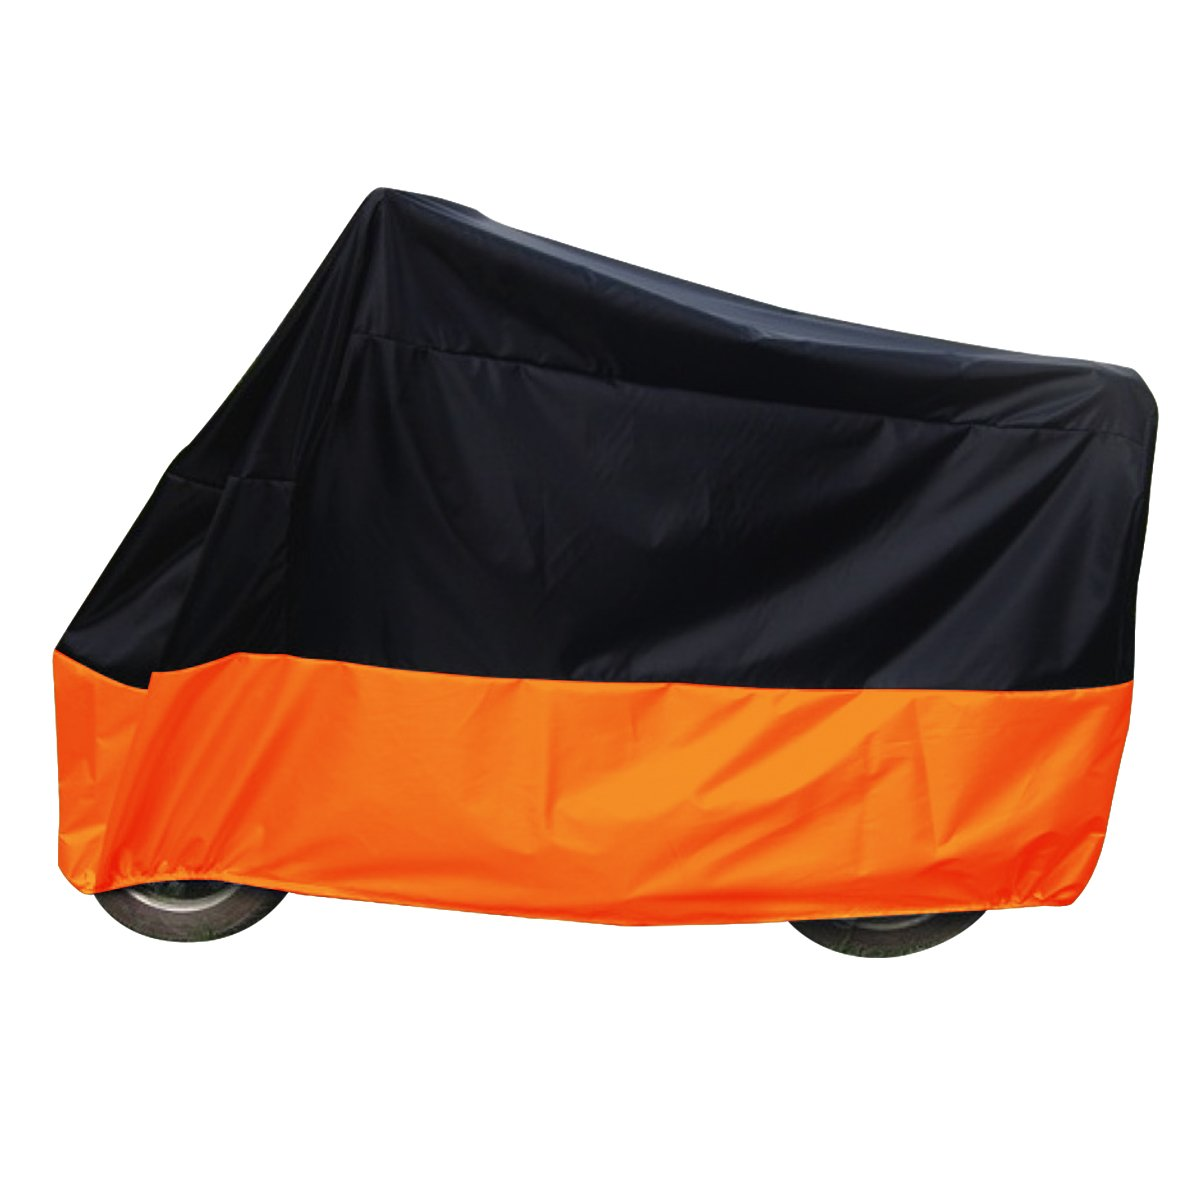 Audew Motorbike Cover, Water-Resistant Dustproof, UV Protective, Breathable Cover for Harley Davidson Sportster 1200 Universal XXL AUDEWeXUYh7bN8